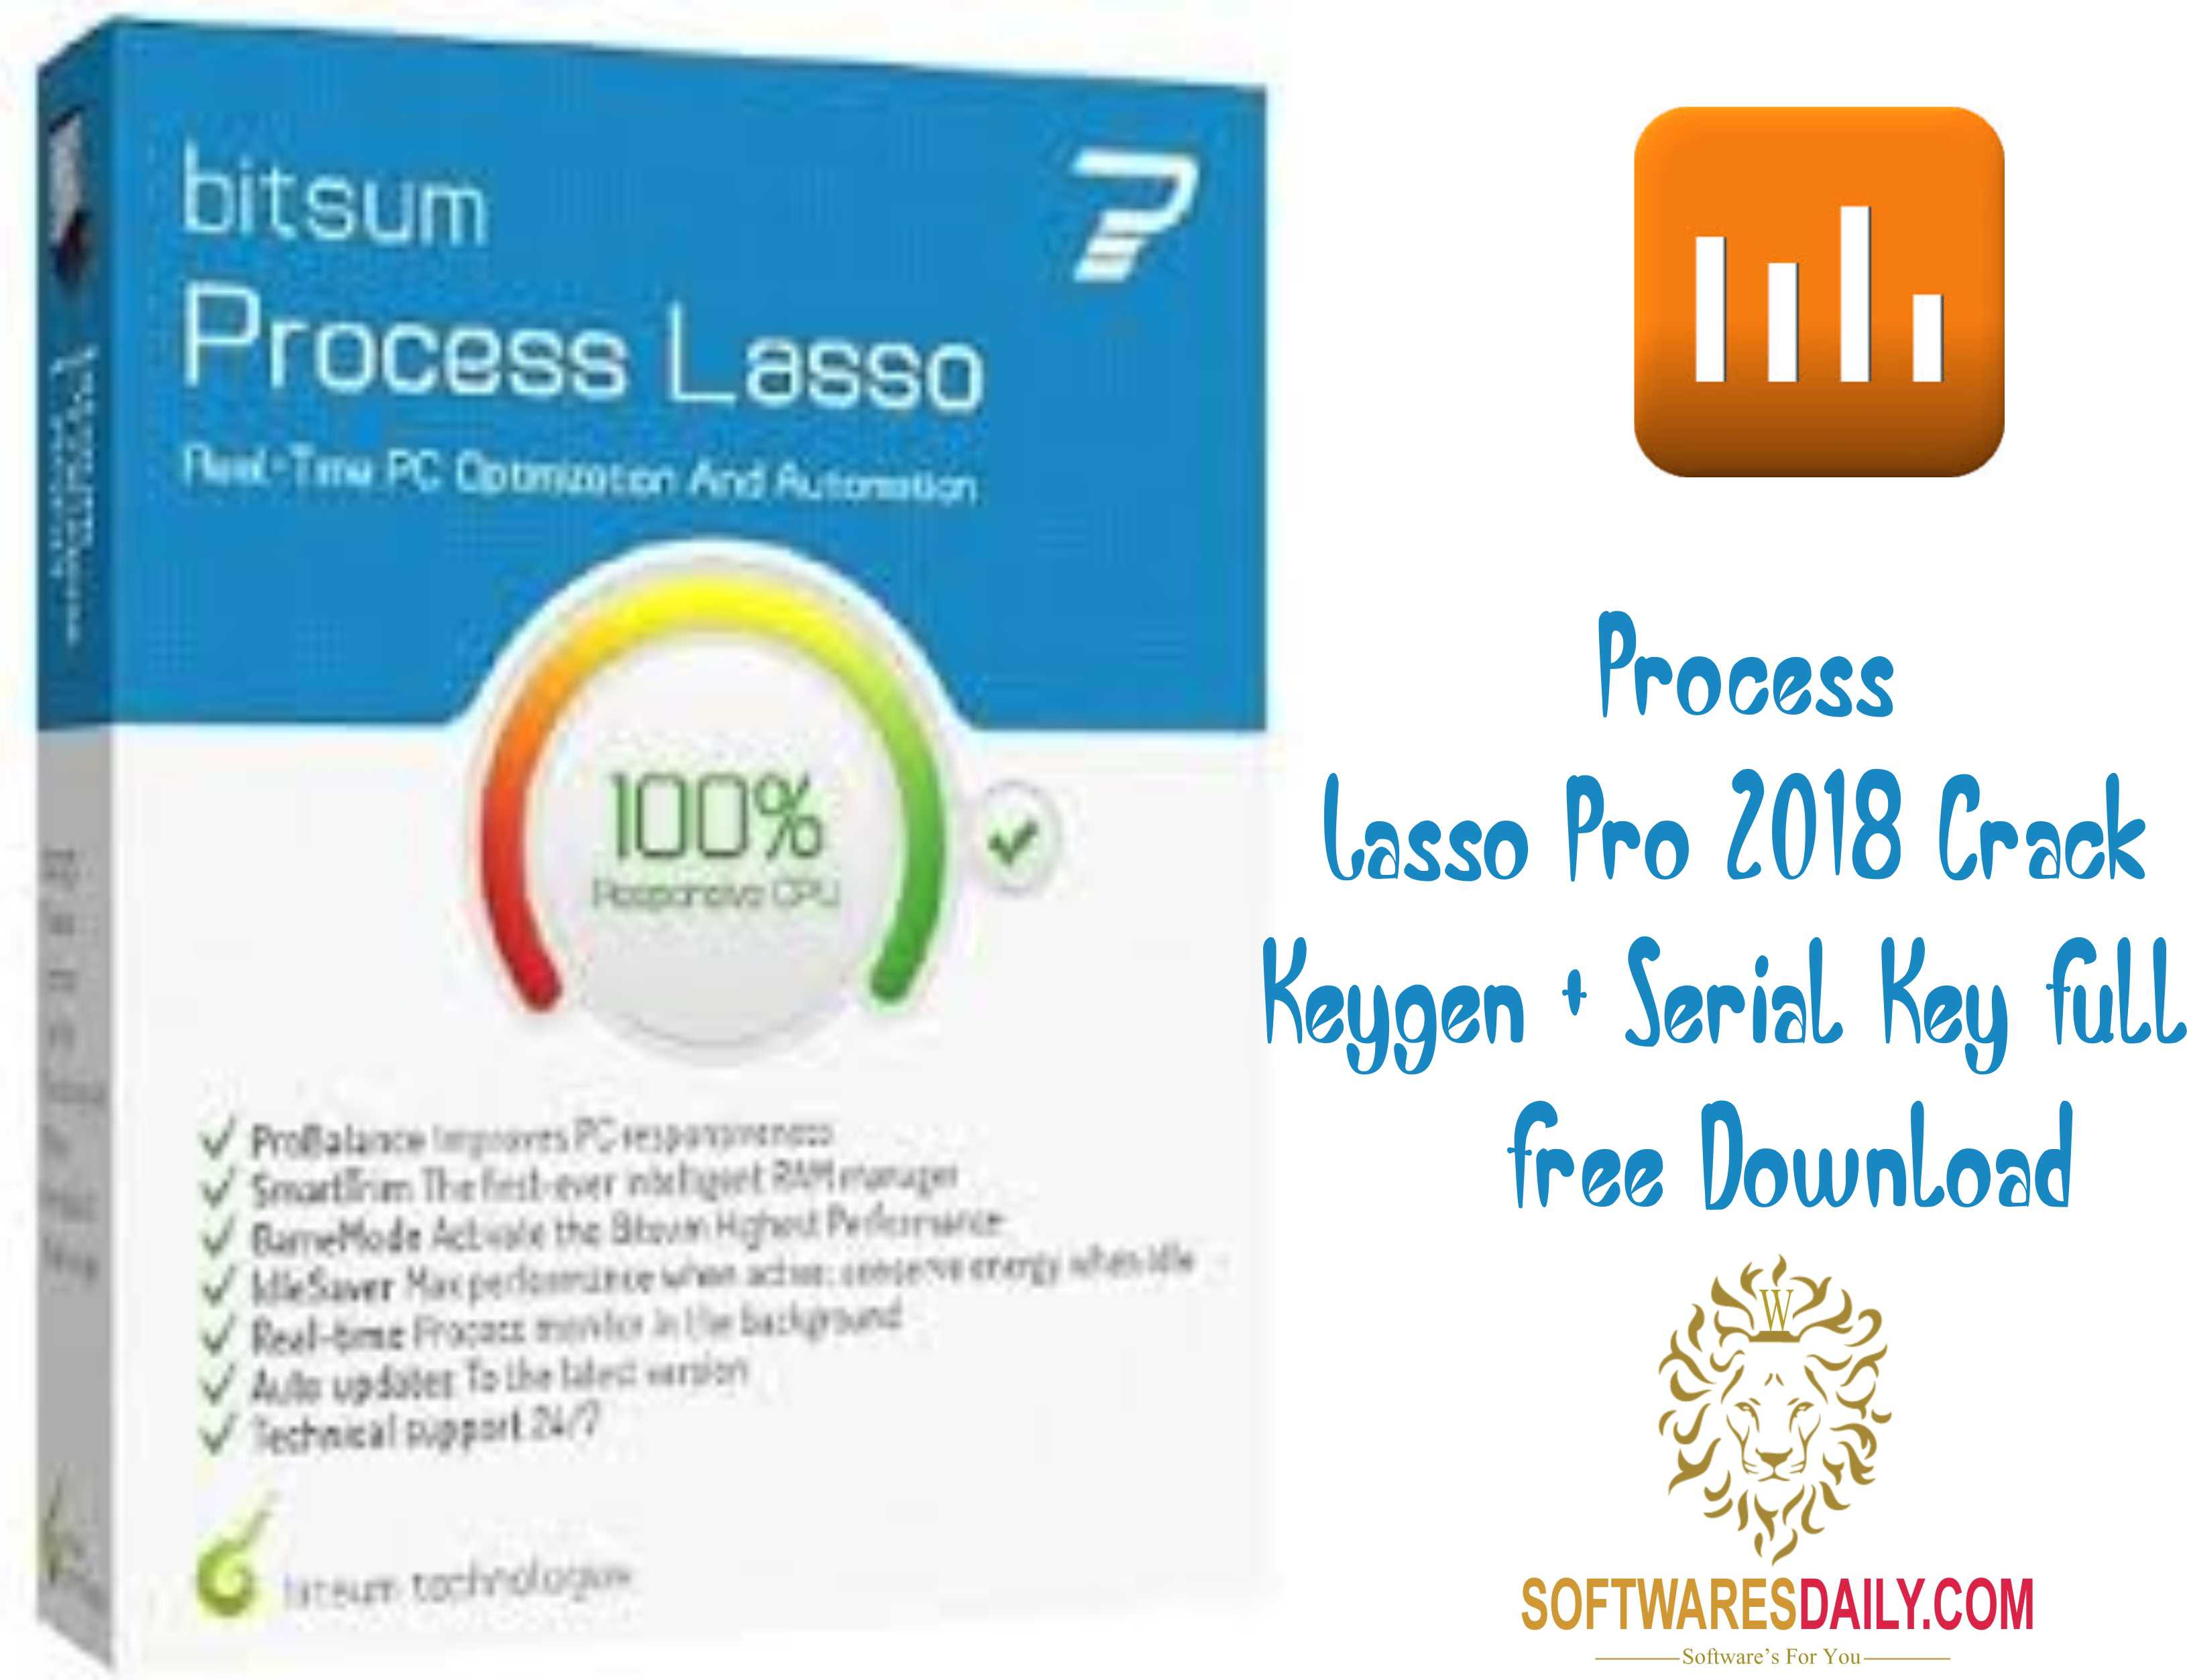 Process Lasso Pro 2018 Crack Keygen + Serial Key Full Free Download